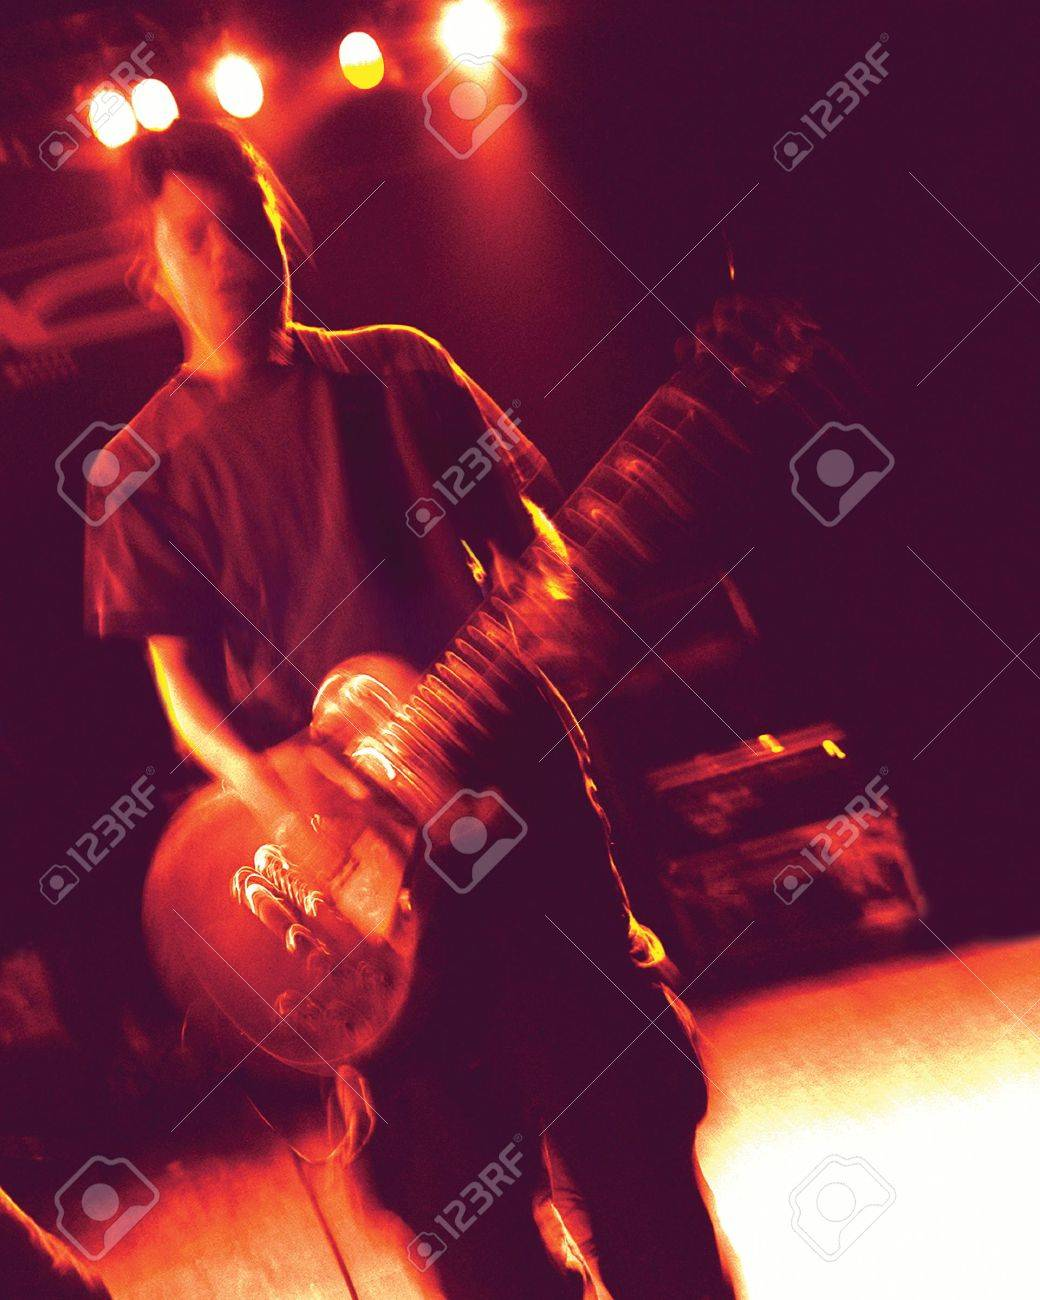 Grainy Blurry Atmospheric Abstract Noisy Hazy Image Of A Guitar